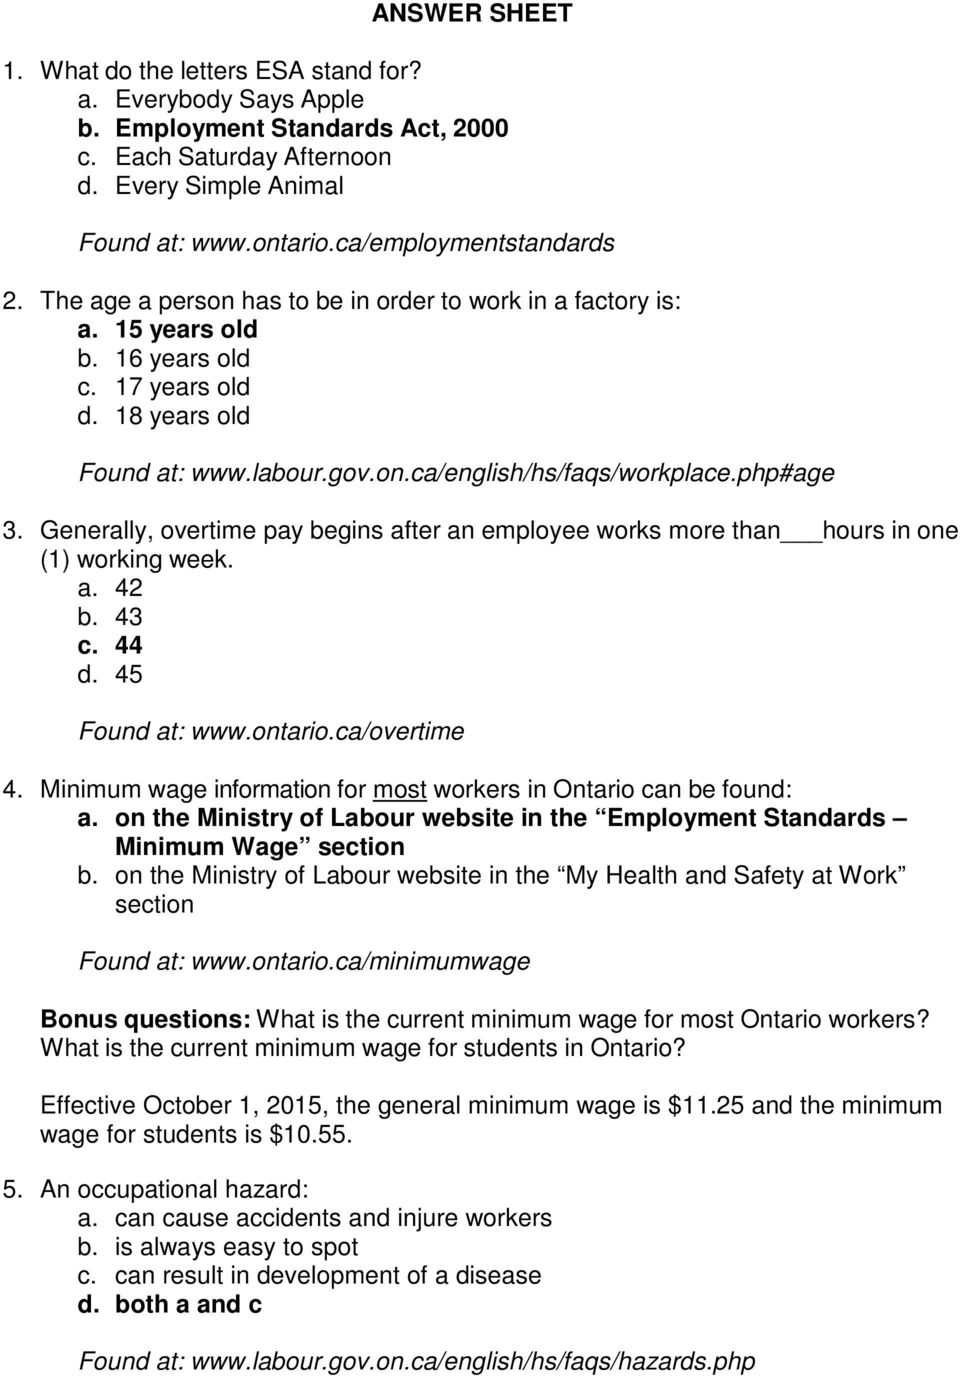 php#age 3. Generally, overtime pay begins after an employee works more than hours in one (1) working week. a. 42 b. 43 c. 44 d. 45 Found at: www.ontario.ca/overtime 4.